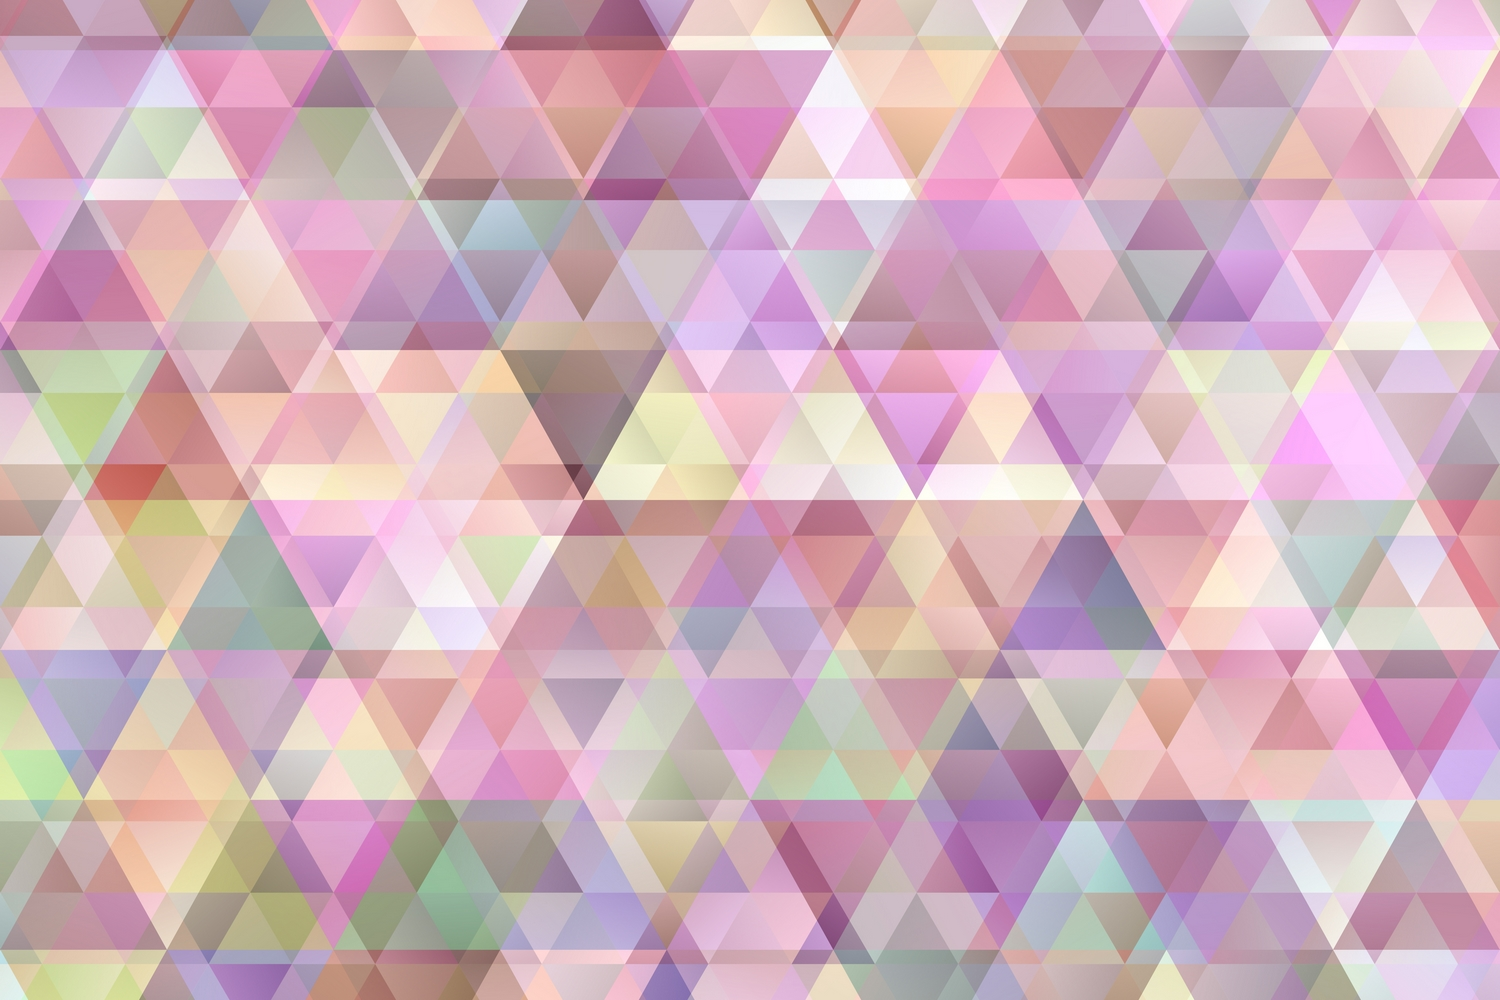 24 Gradient Polygon Backgrounds AI, EPS, JPG 5000x5000 example image 21